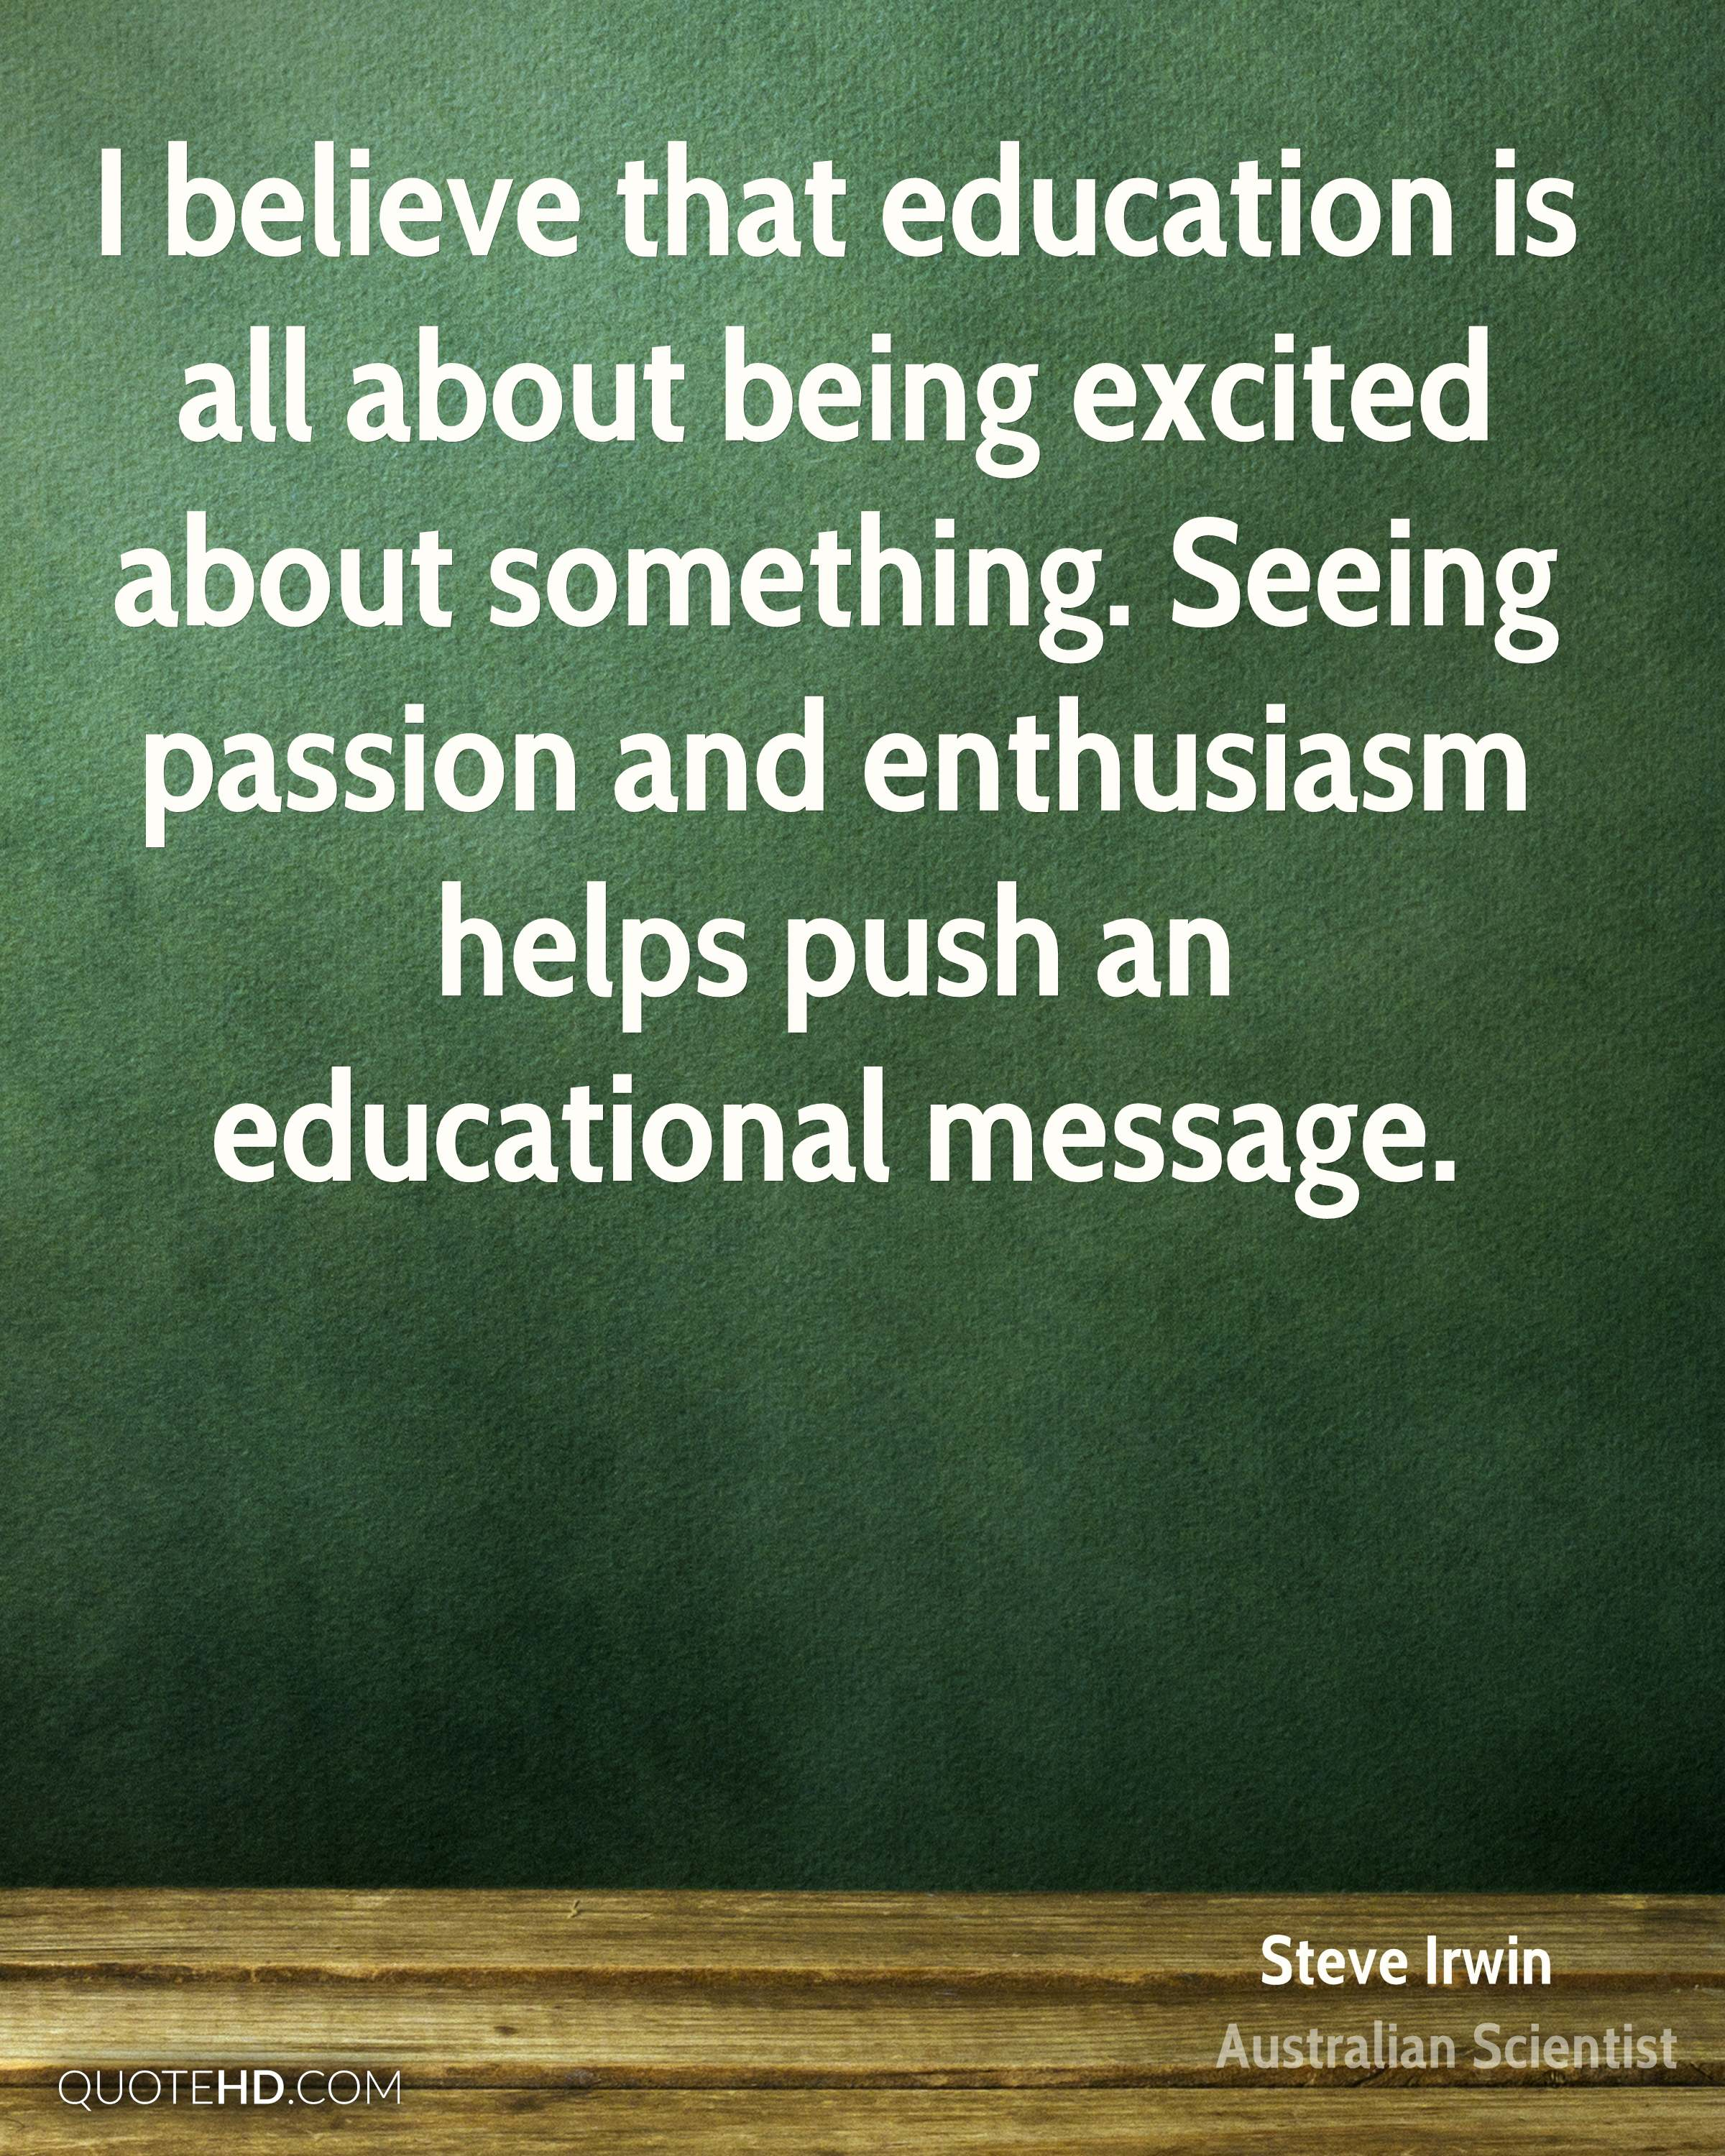 I believe that education is all about being excited about something. Seeing passion and enthusiasm helps push an educational message.